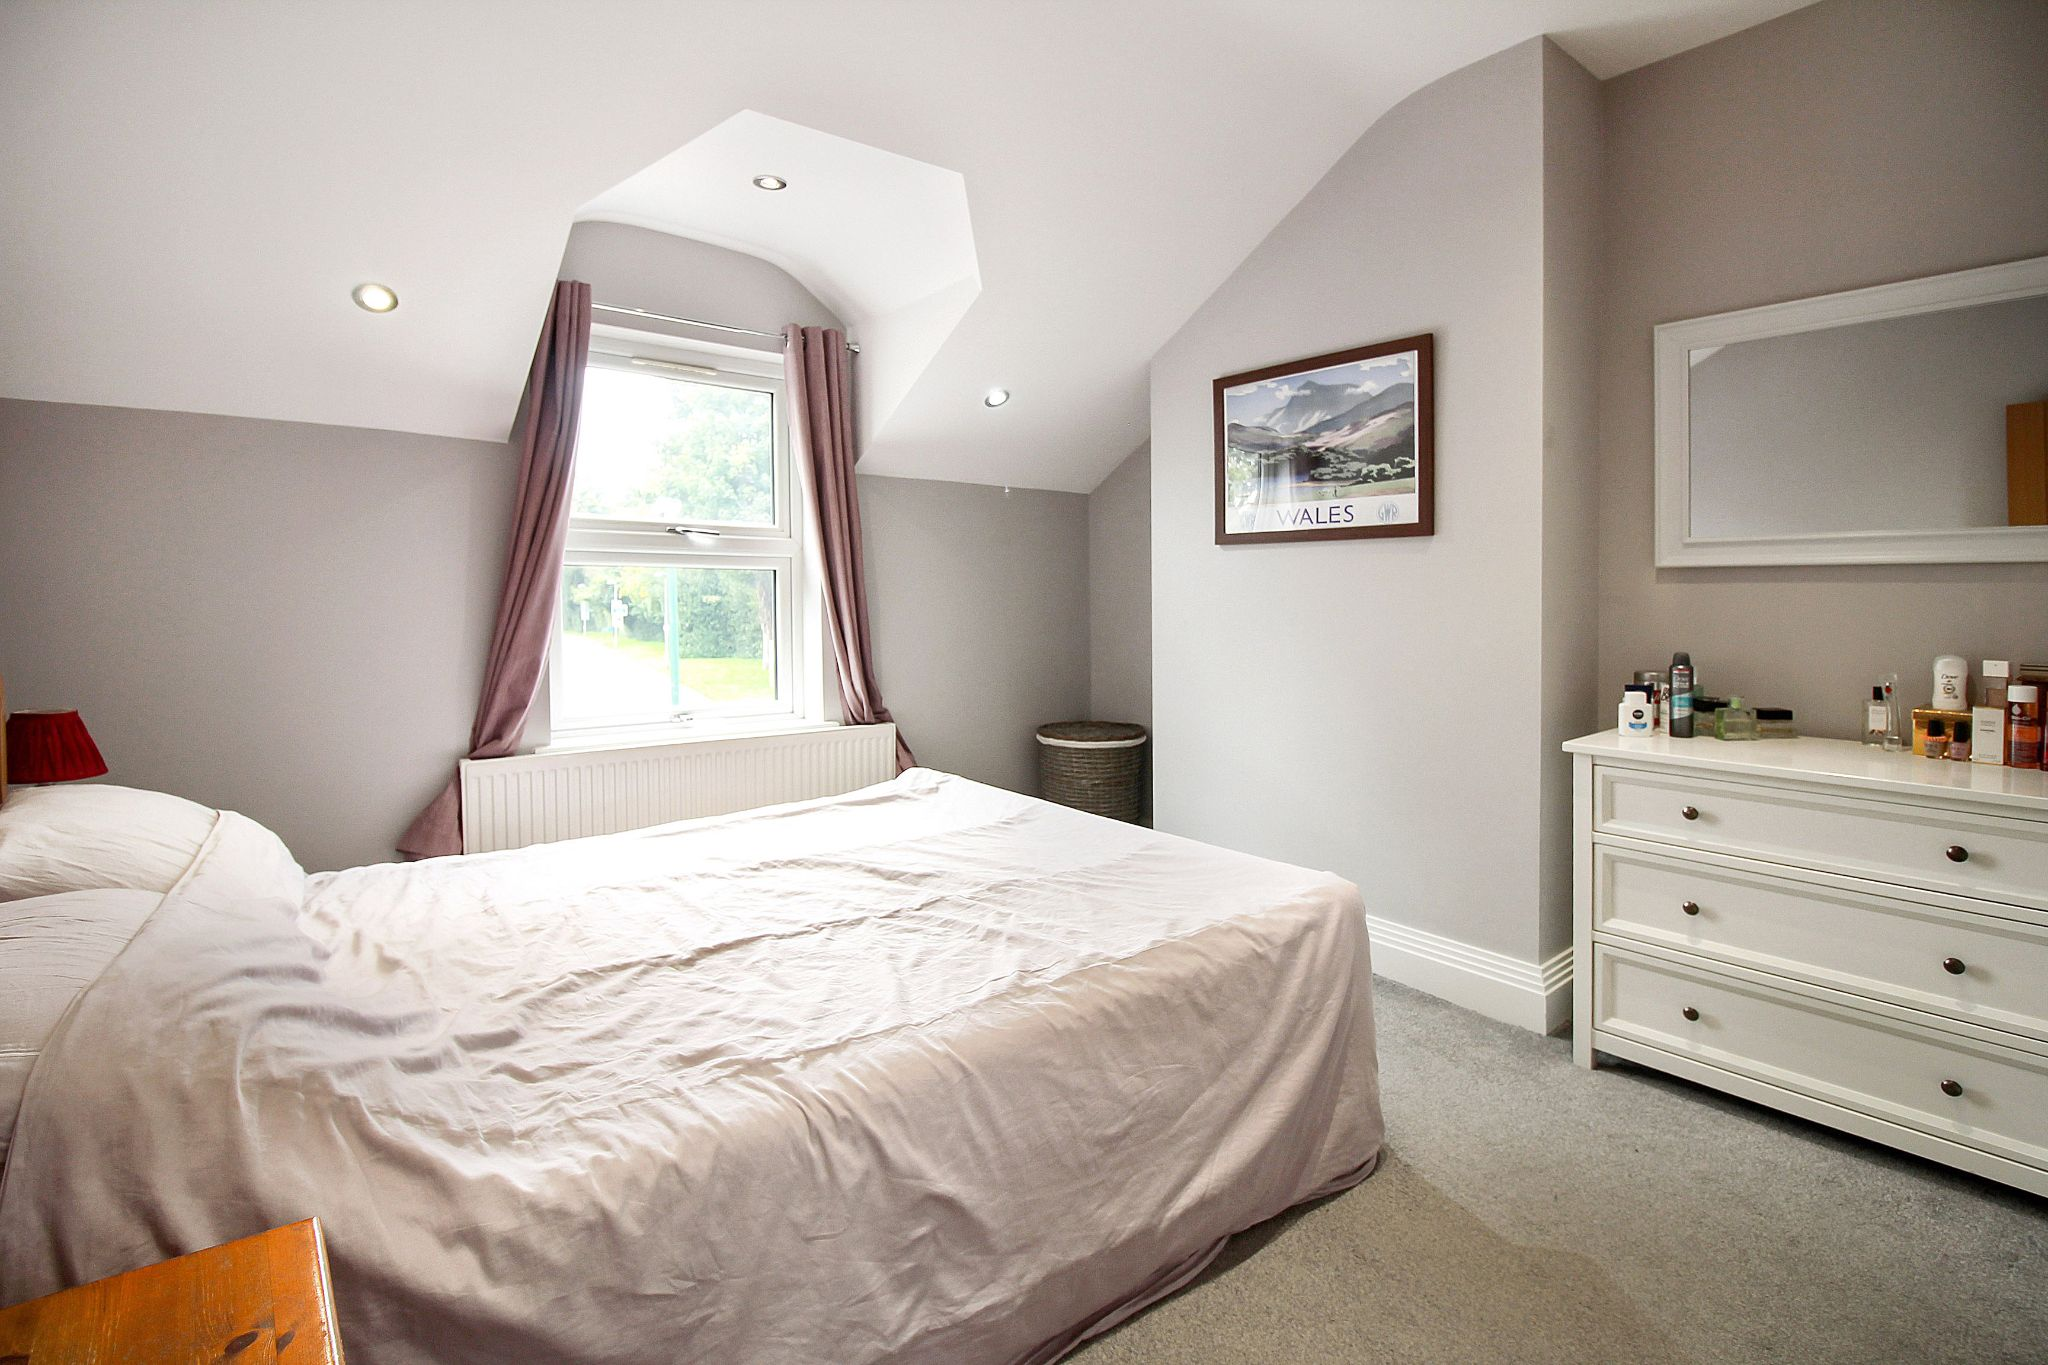 2 bedroom end terraced house For Sale in Solihull - Photograph 7.